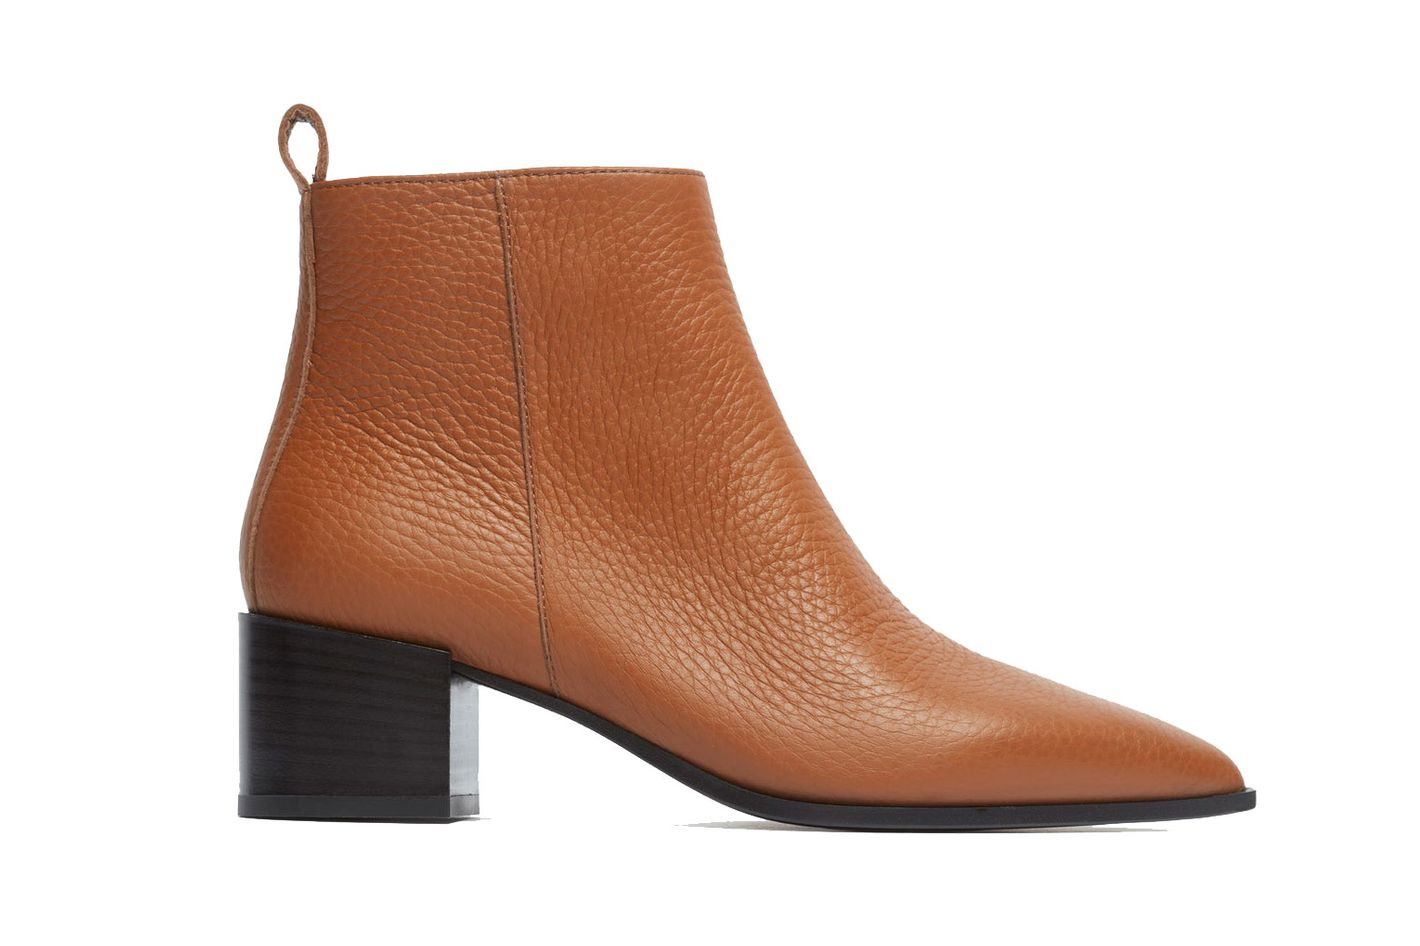 Everlane The Boss Boot in Cognac Pebbled